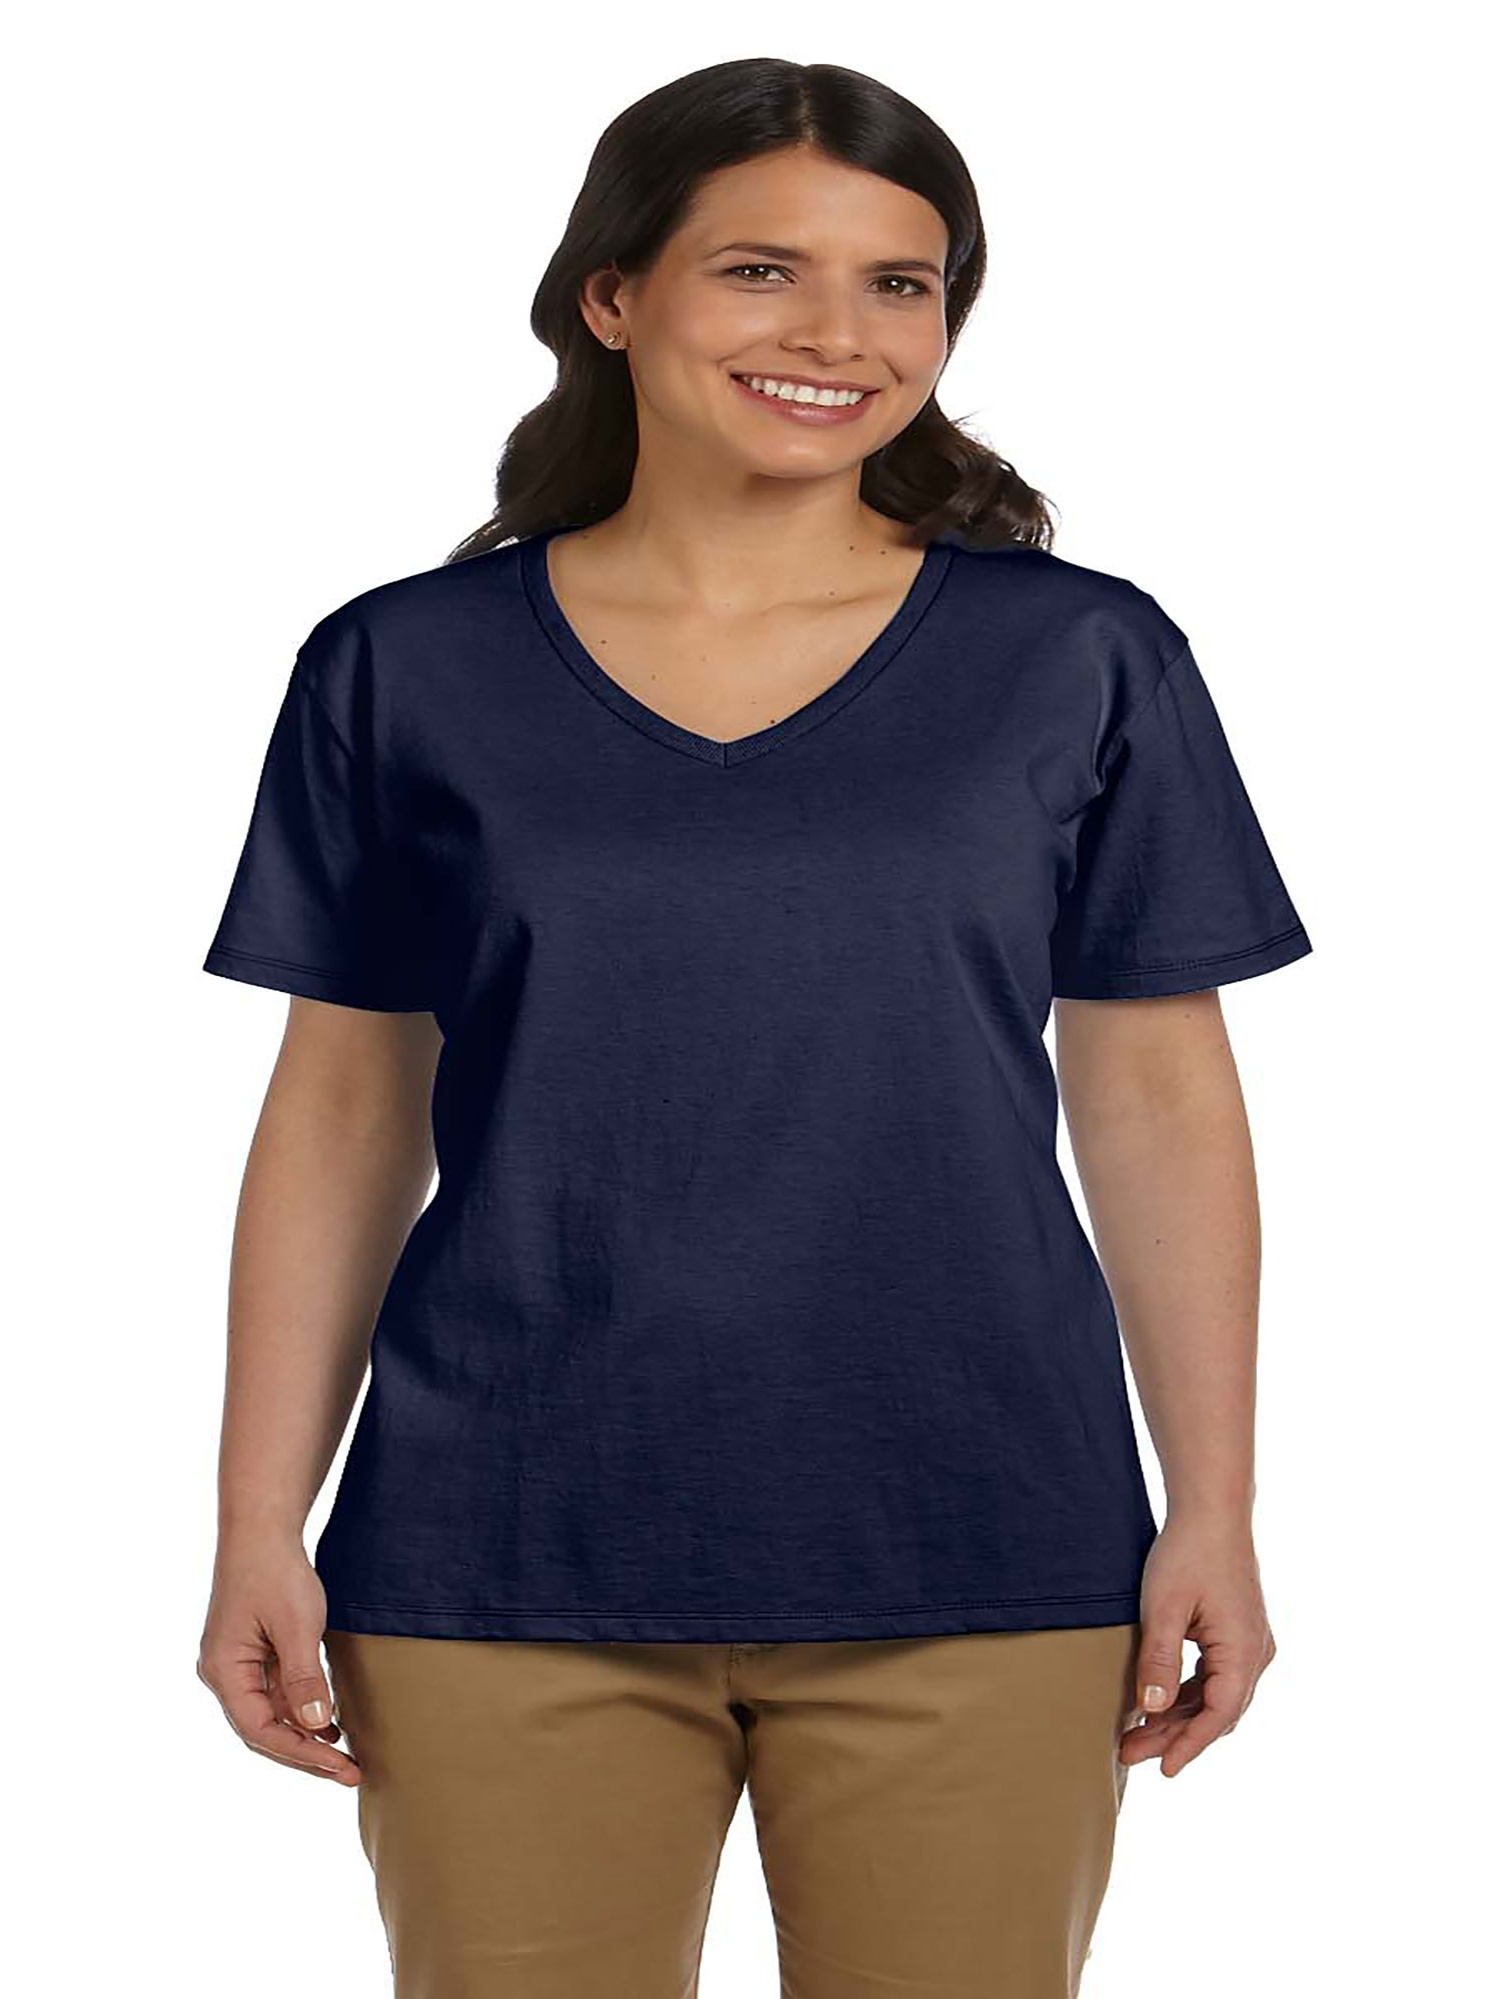 Hanes Relaxed Fit Women's ComfortSoft V-neck T-Shirt, Style 5780